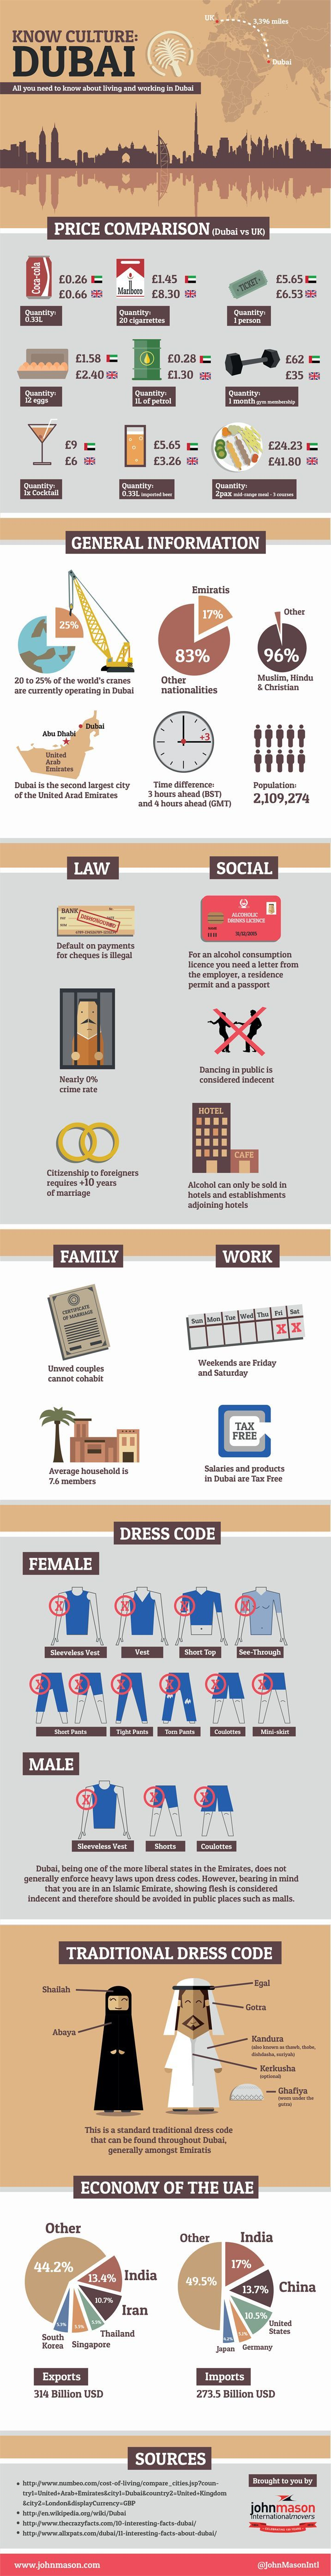 A move to Dubai on the horizon? Know your new culture with this infographic!  http://www.johnmason.com/moving-guide/destinations1/uae/know-culture-dubai/: